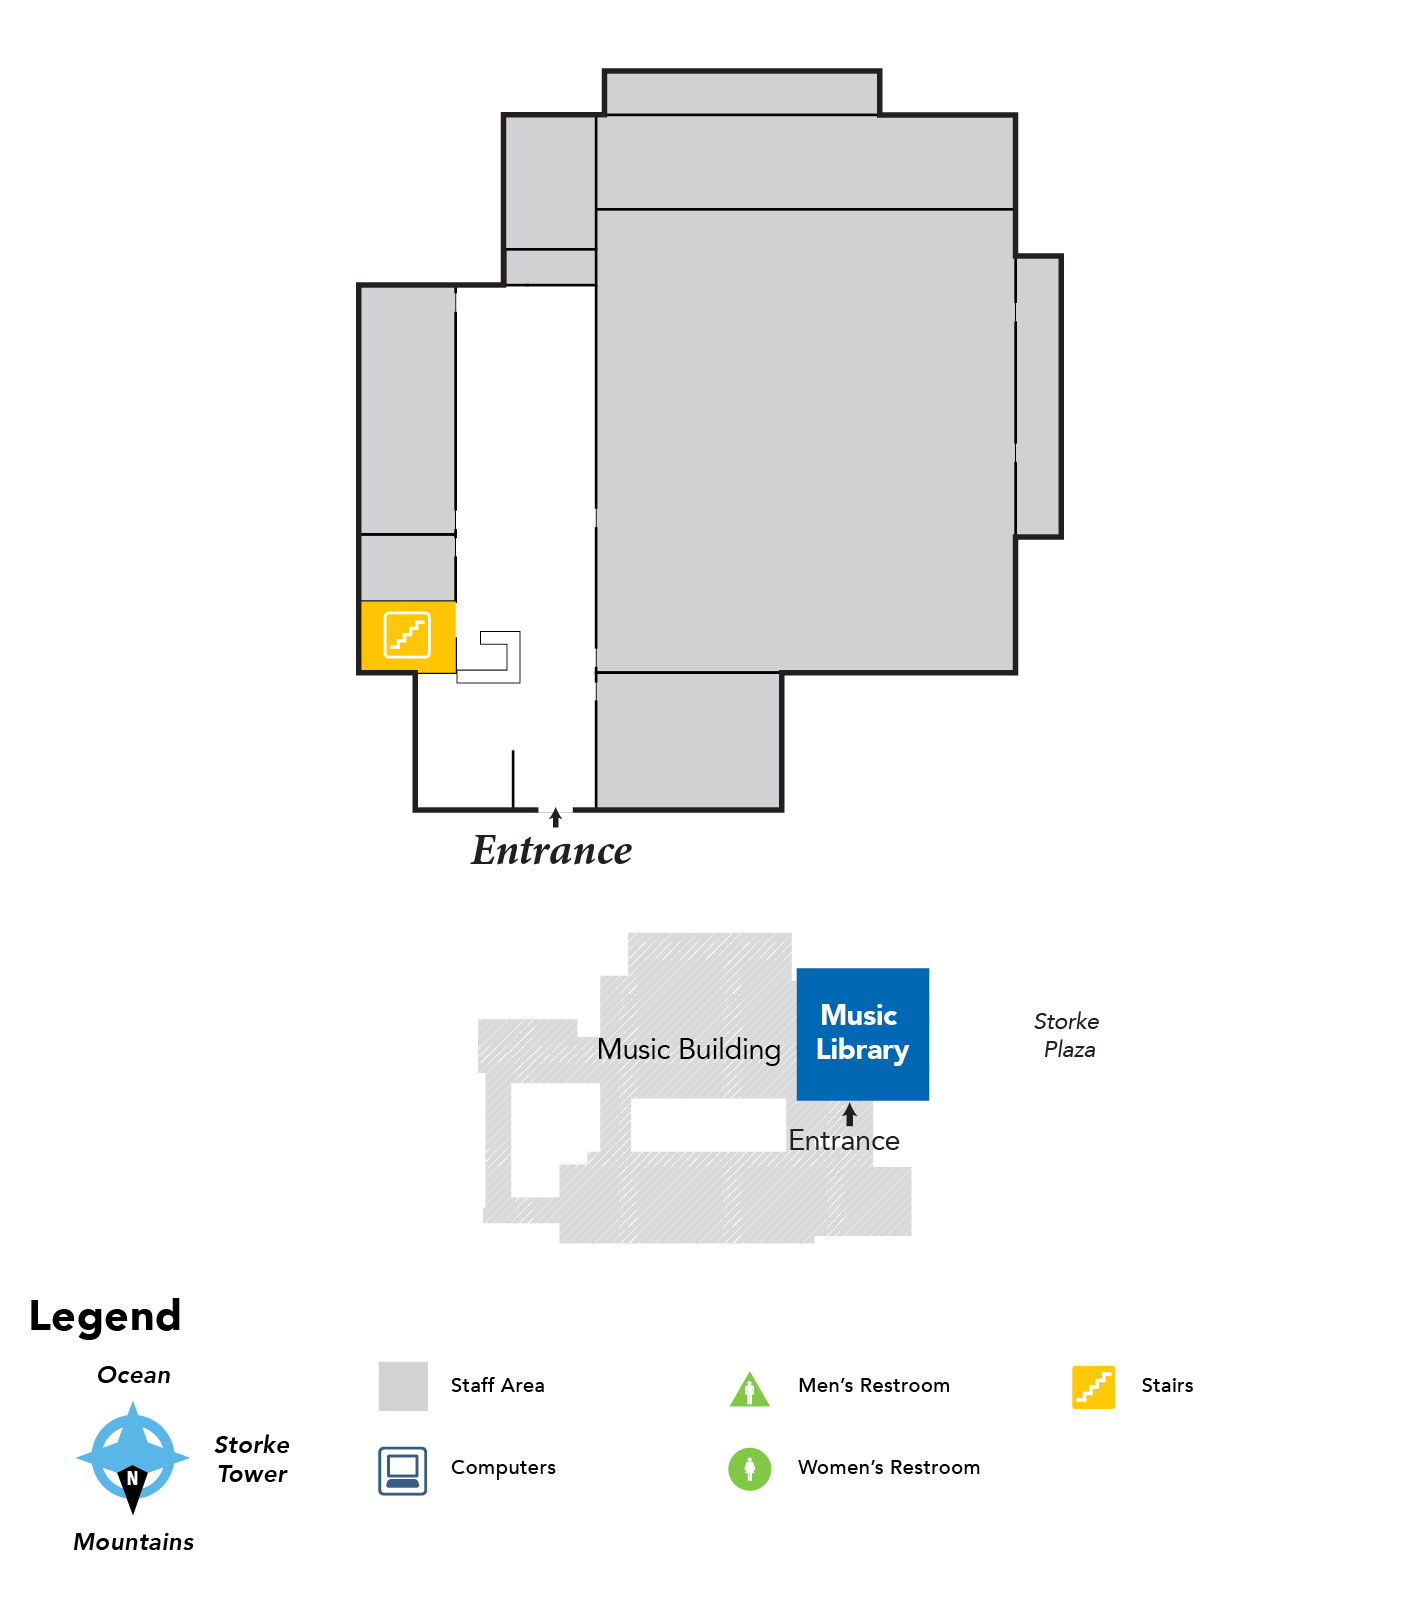 map of floor 1 Music Library